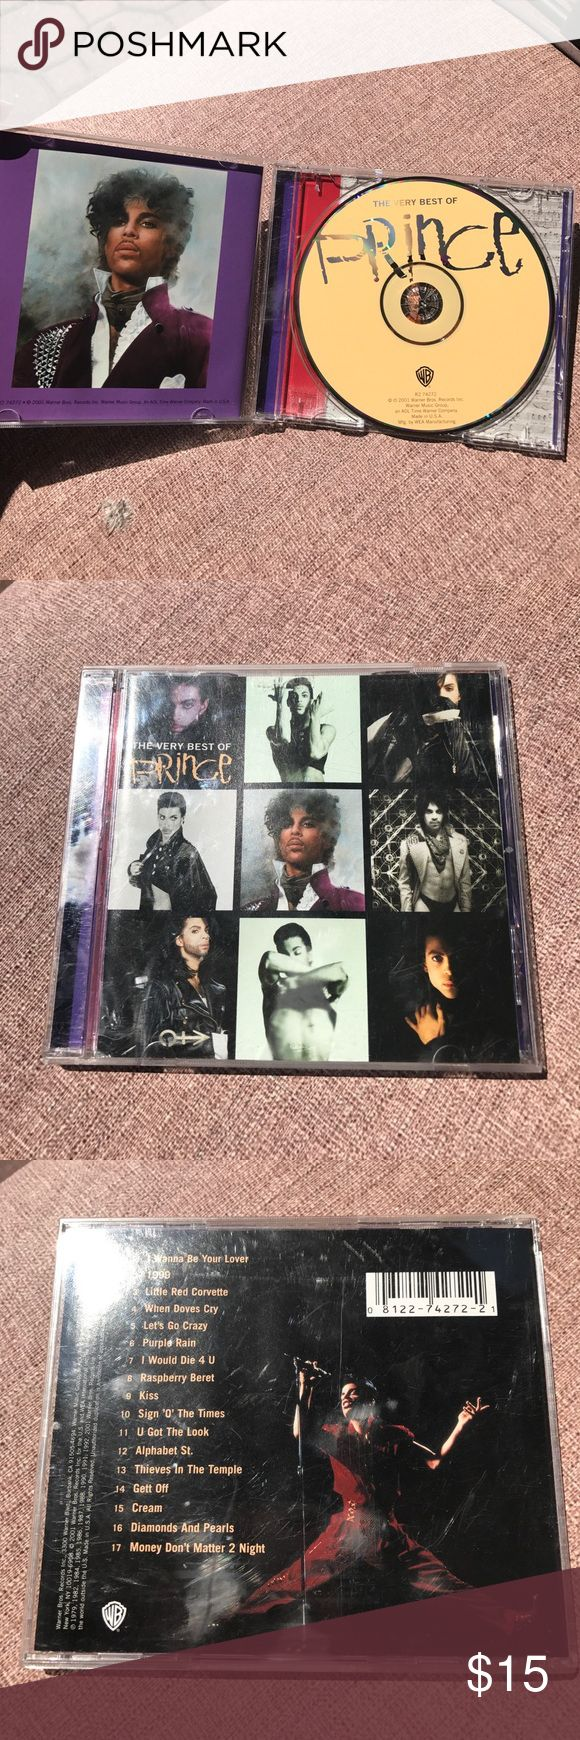 2001 THE VERY BEST OF PRINCE CD 2001 THE VERY BEST OF PRINCE CD- The CD inside is in new condition. No scratches or finger prints. Other